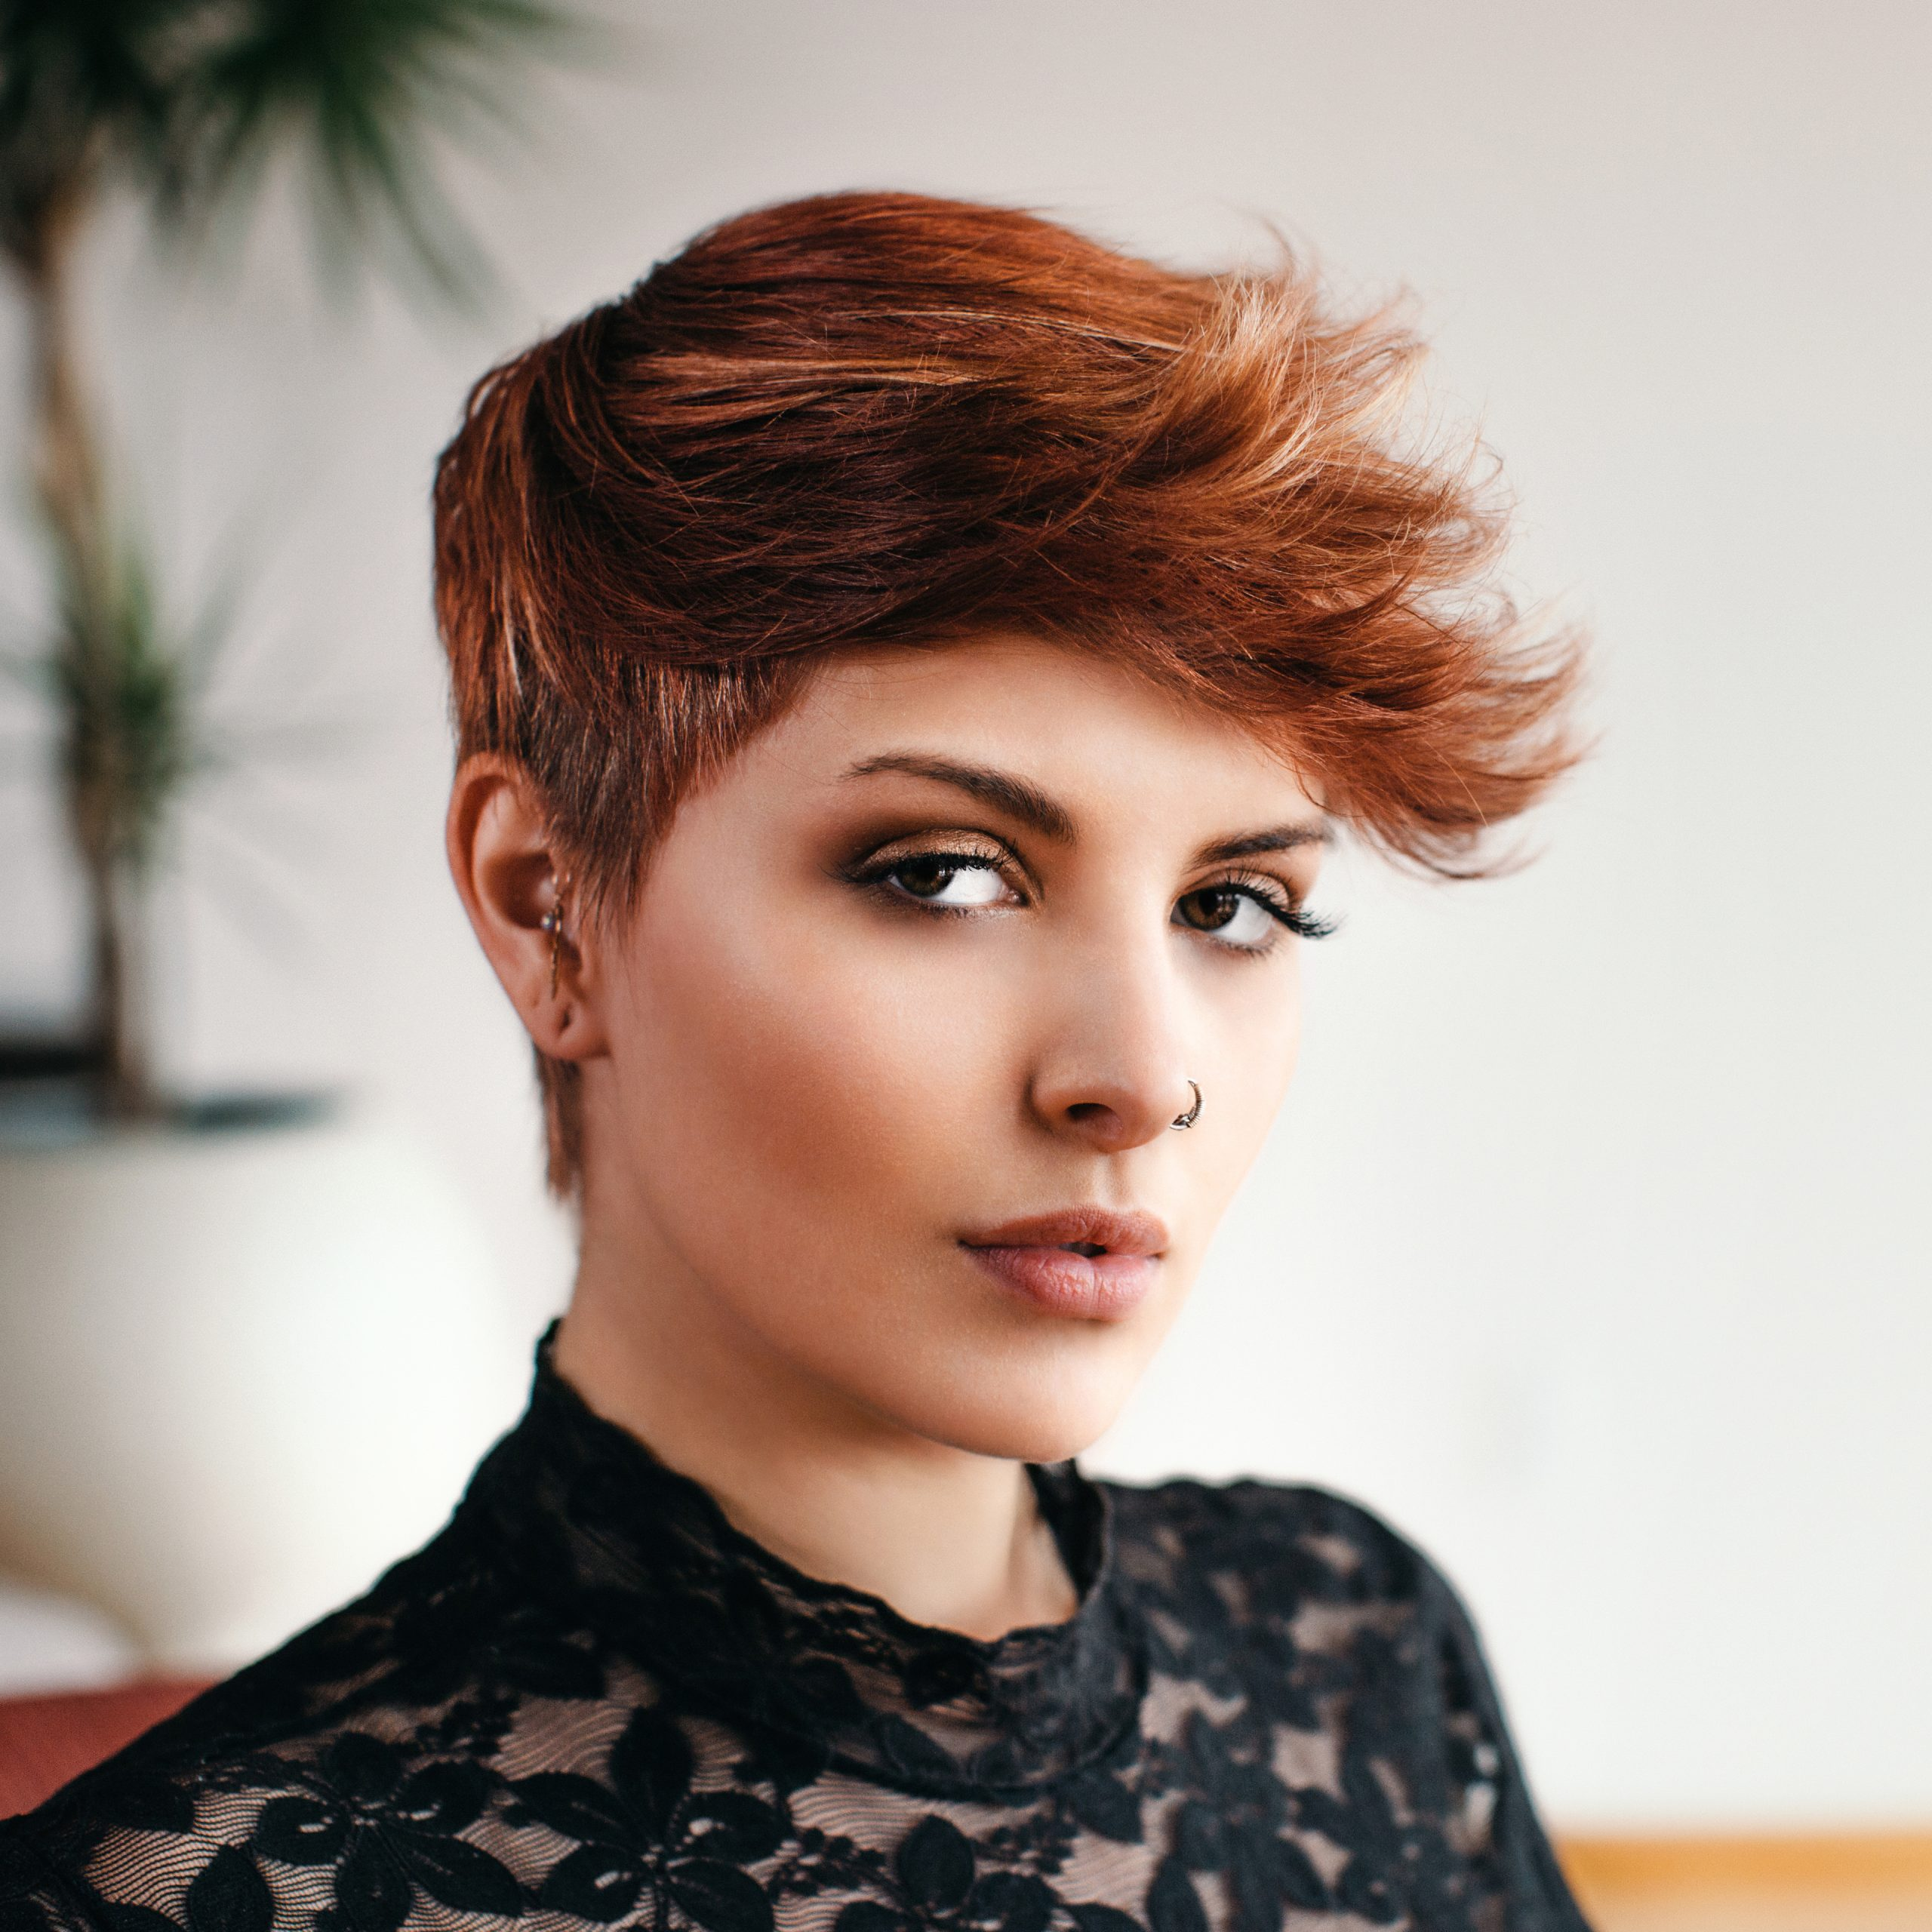 Well Liked Razor Cut Pink Pixie Hairstyles With Edgy Undercut Intended For Razor Cut Pixie – Behindthechair (View 1 of 20)